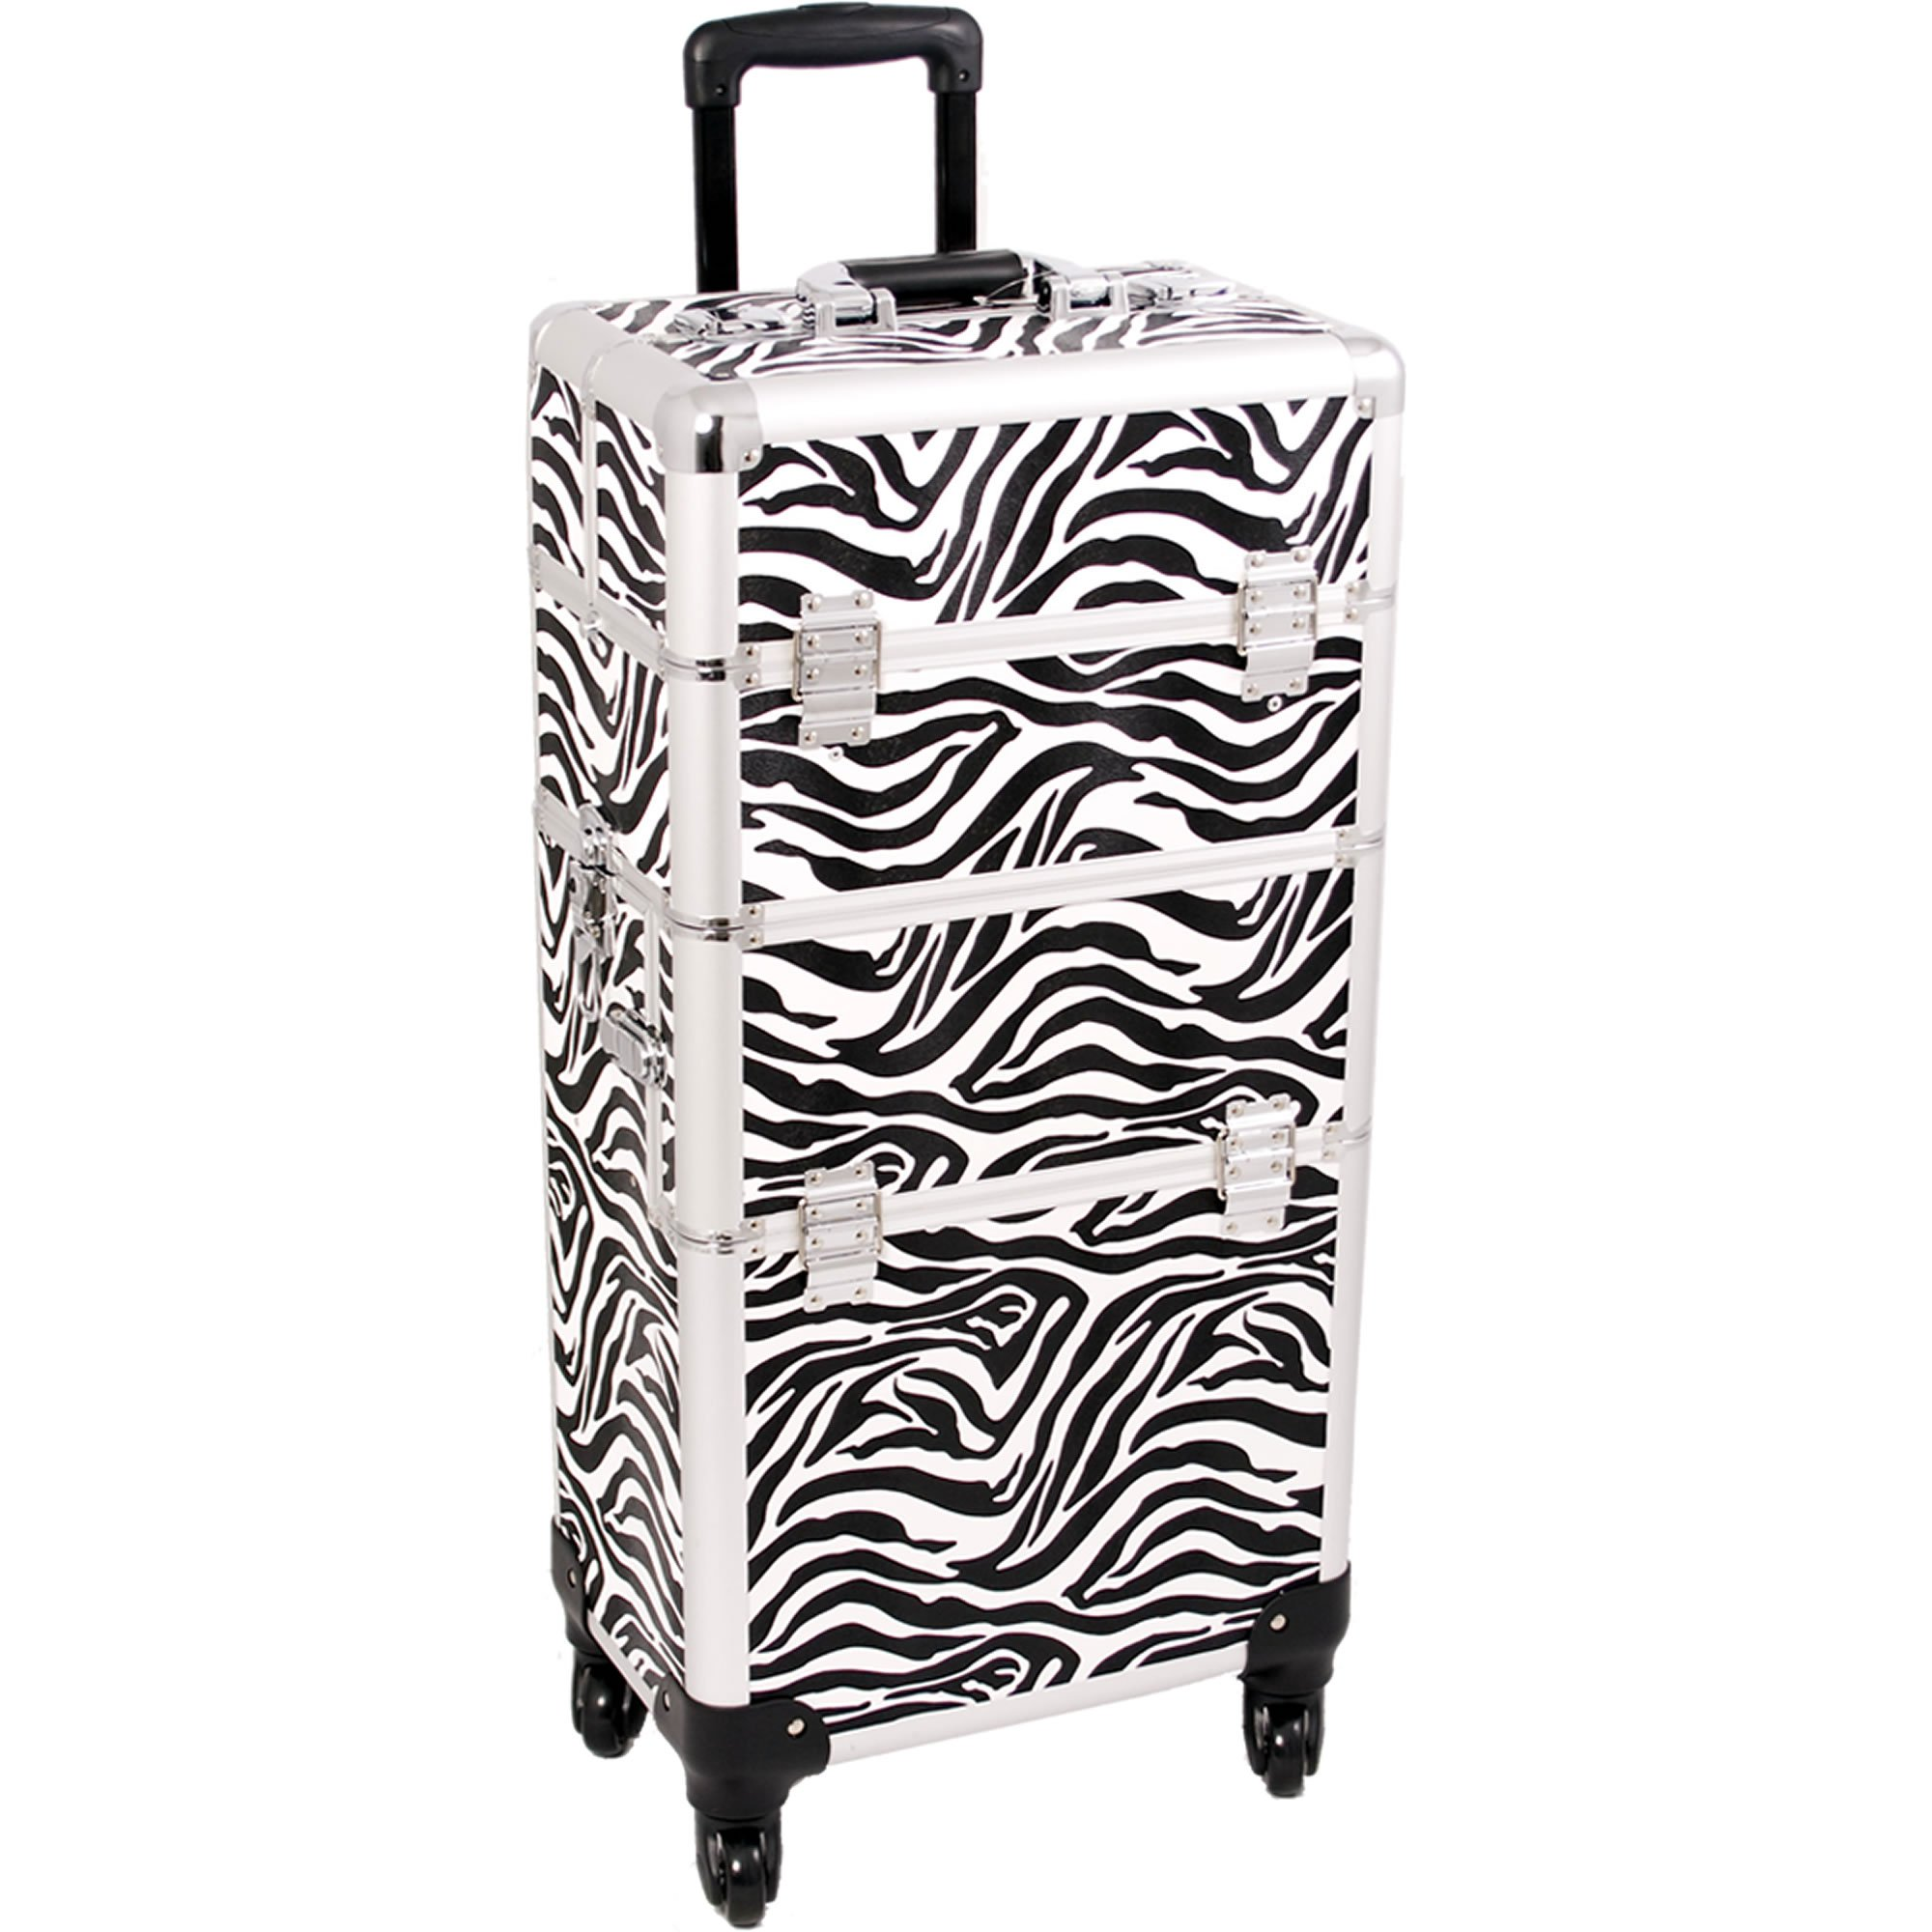 Sunrise Belli 2-In-1 Rolling Makeup Case Professional Nail Travel Organizer Box, Zebra, 21 Pound by SunRise